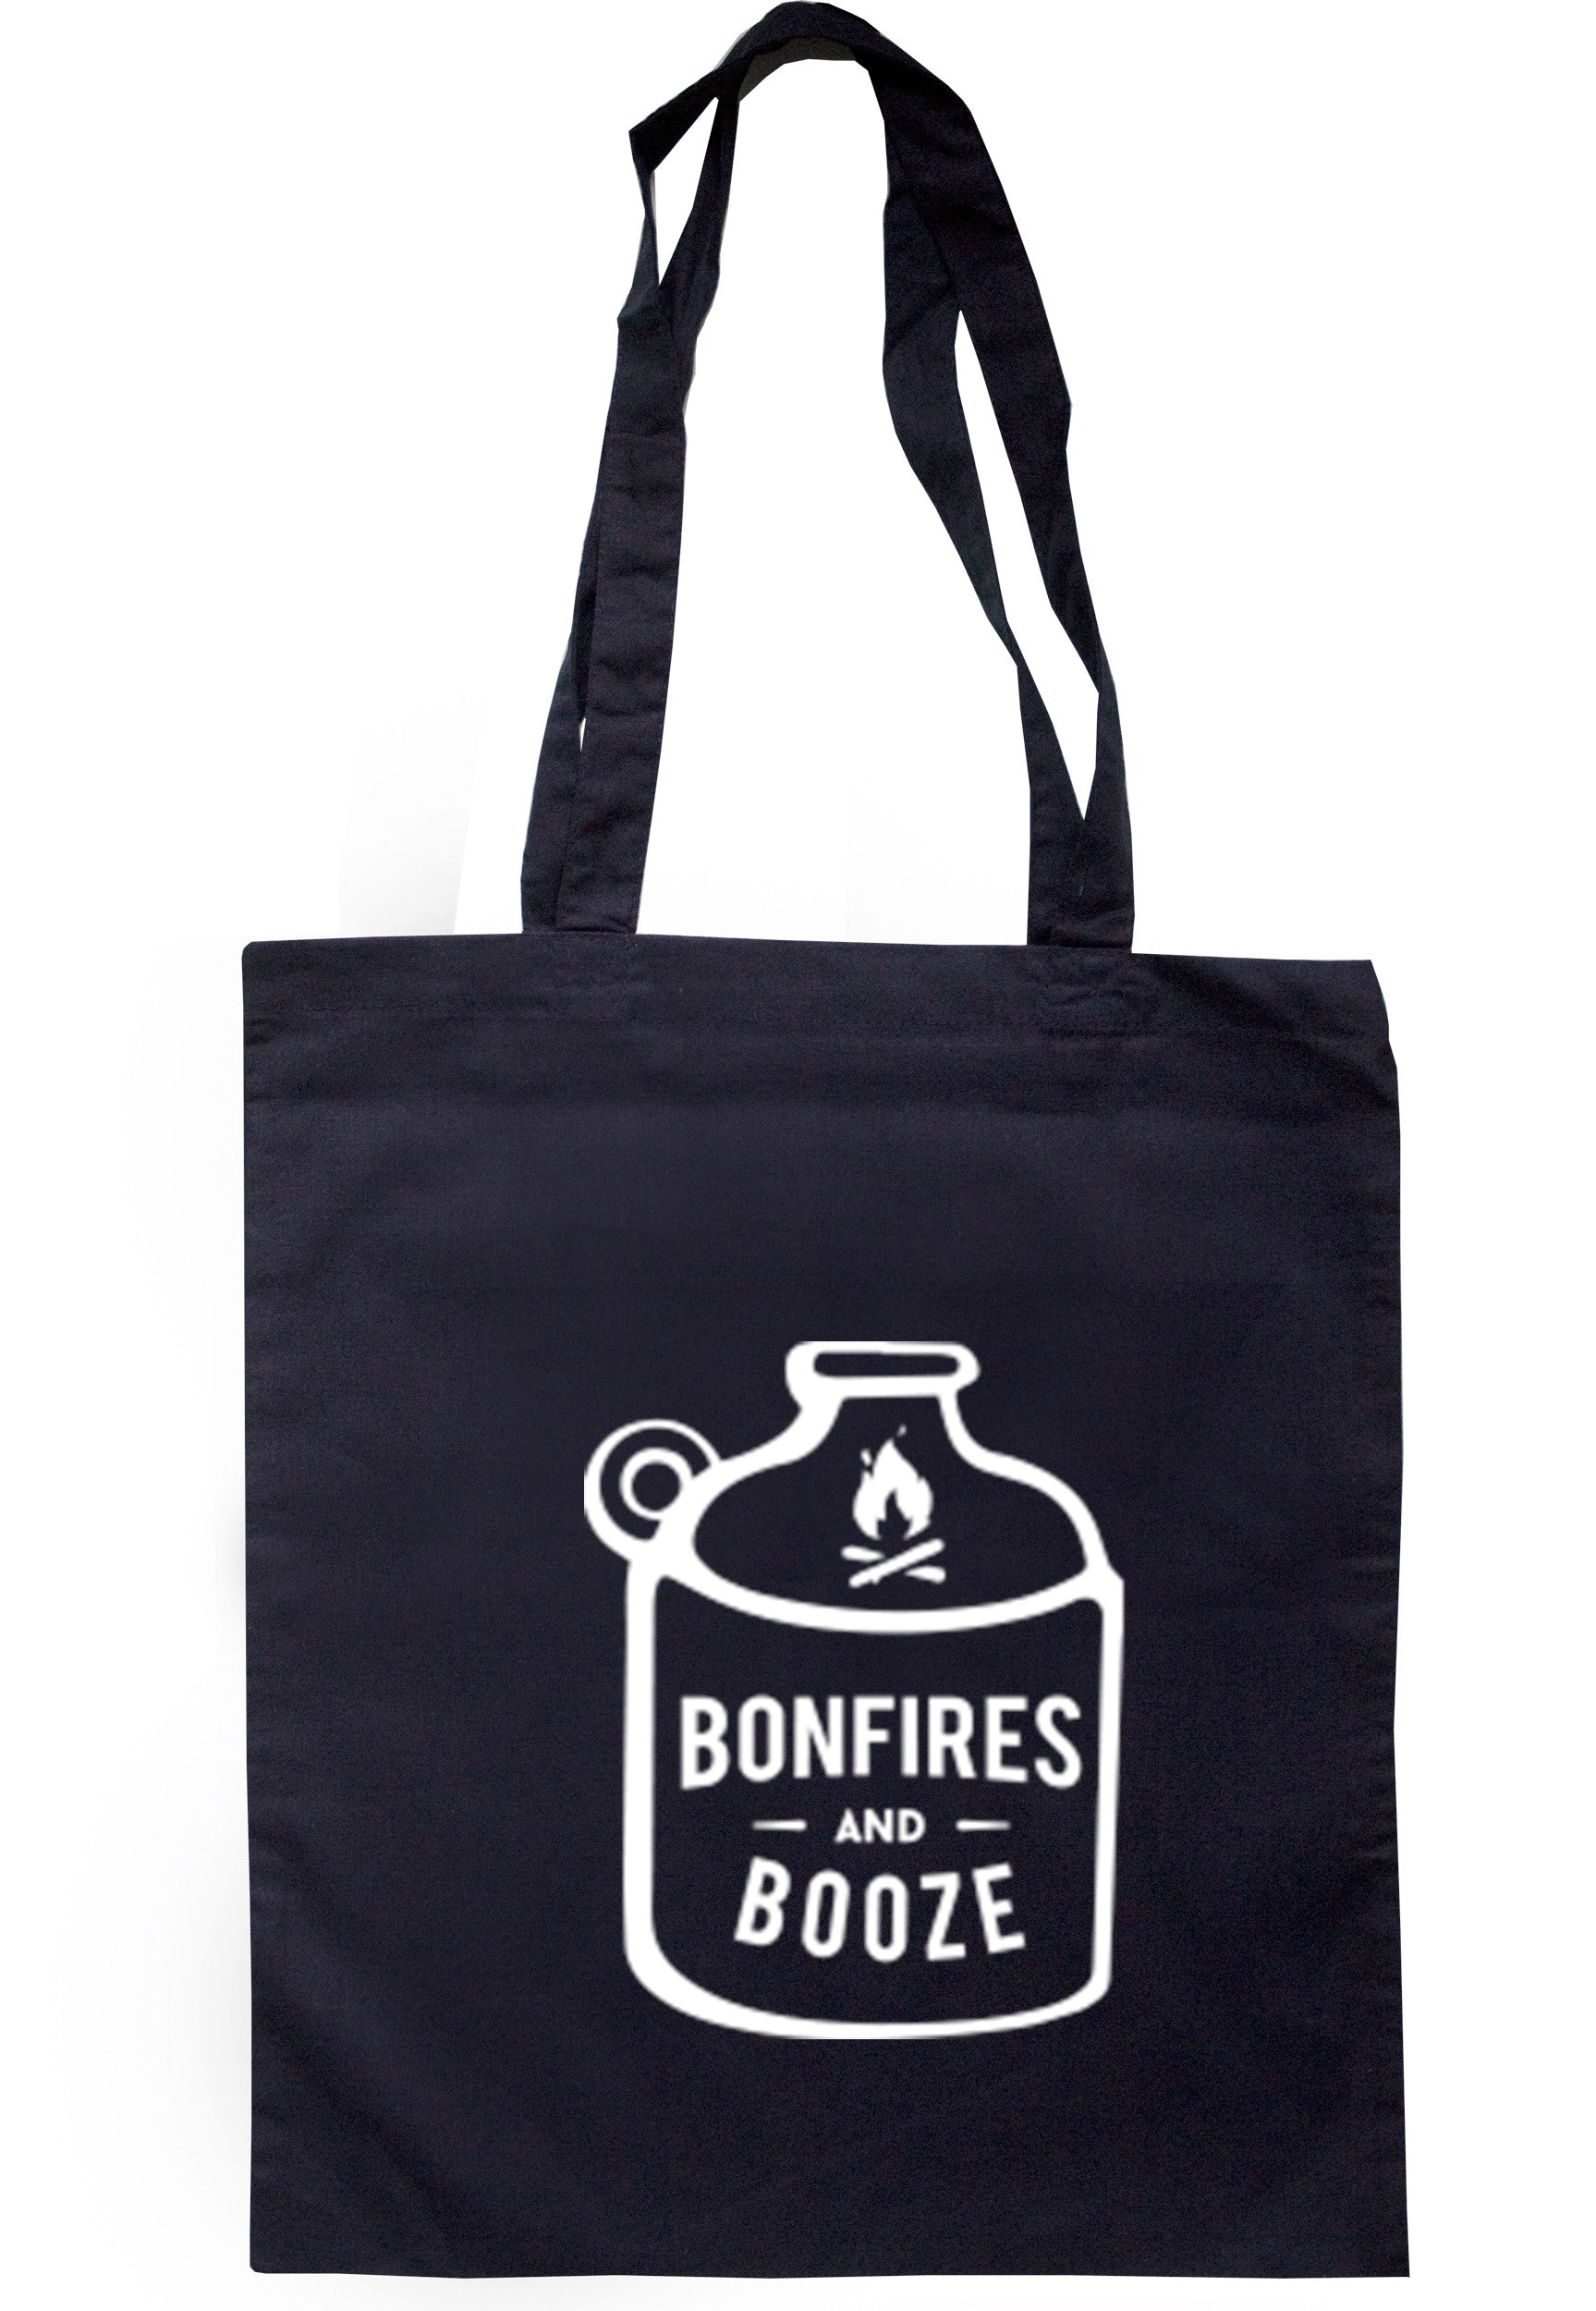 Bonfires And Booze Tote Bag TB0332 - Illustrated Identity Ltd.